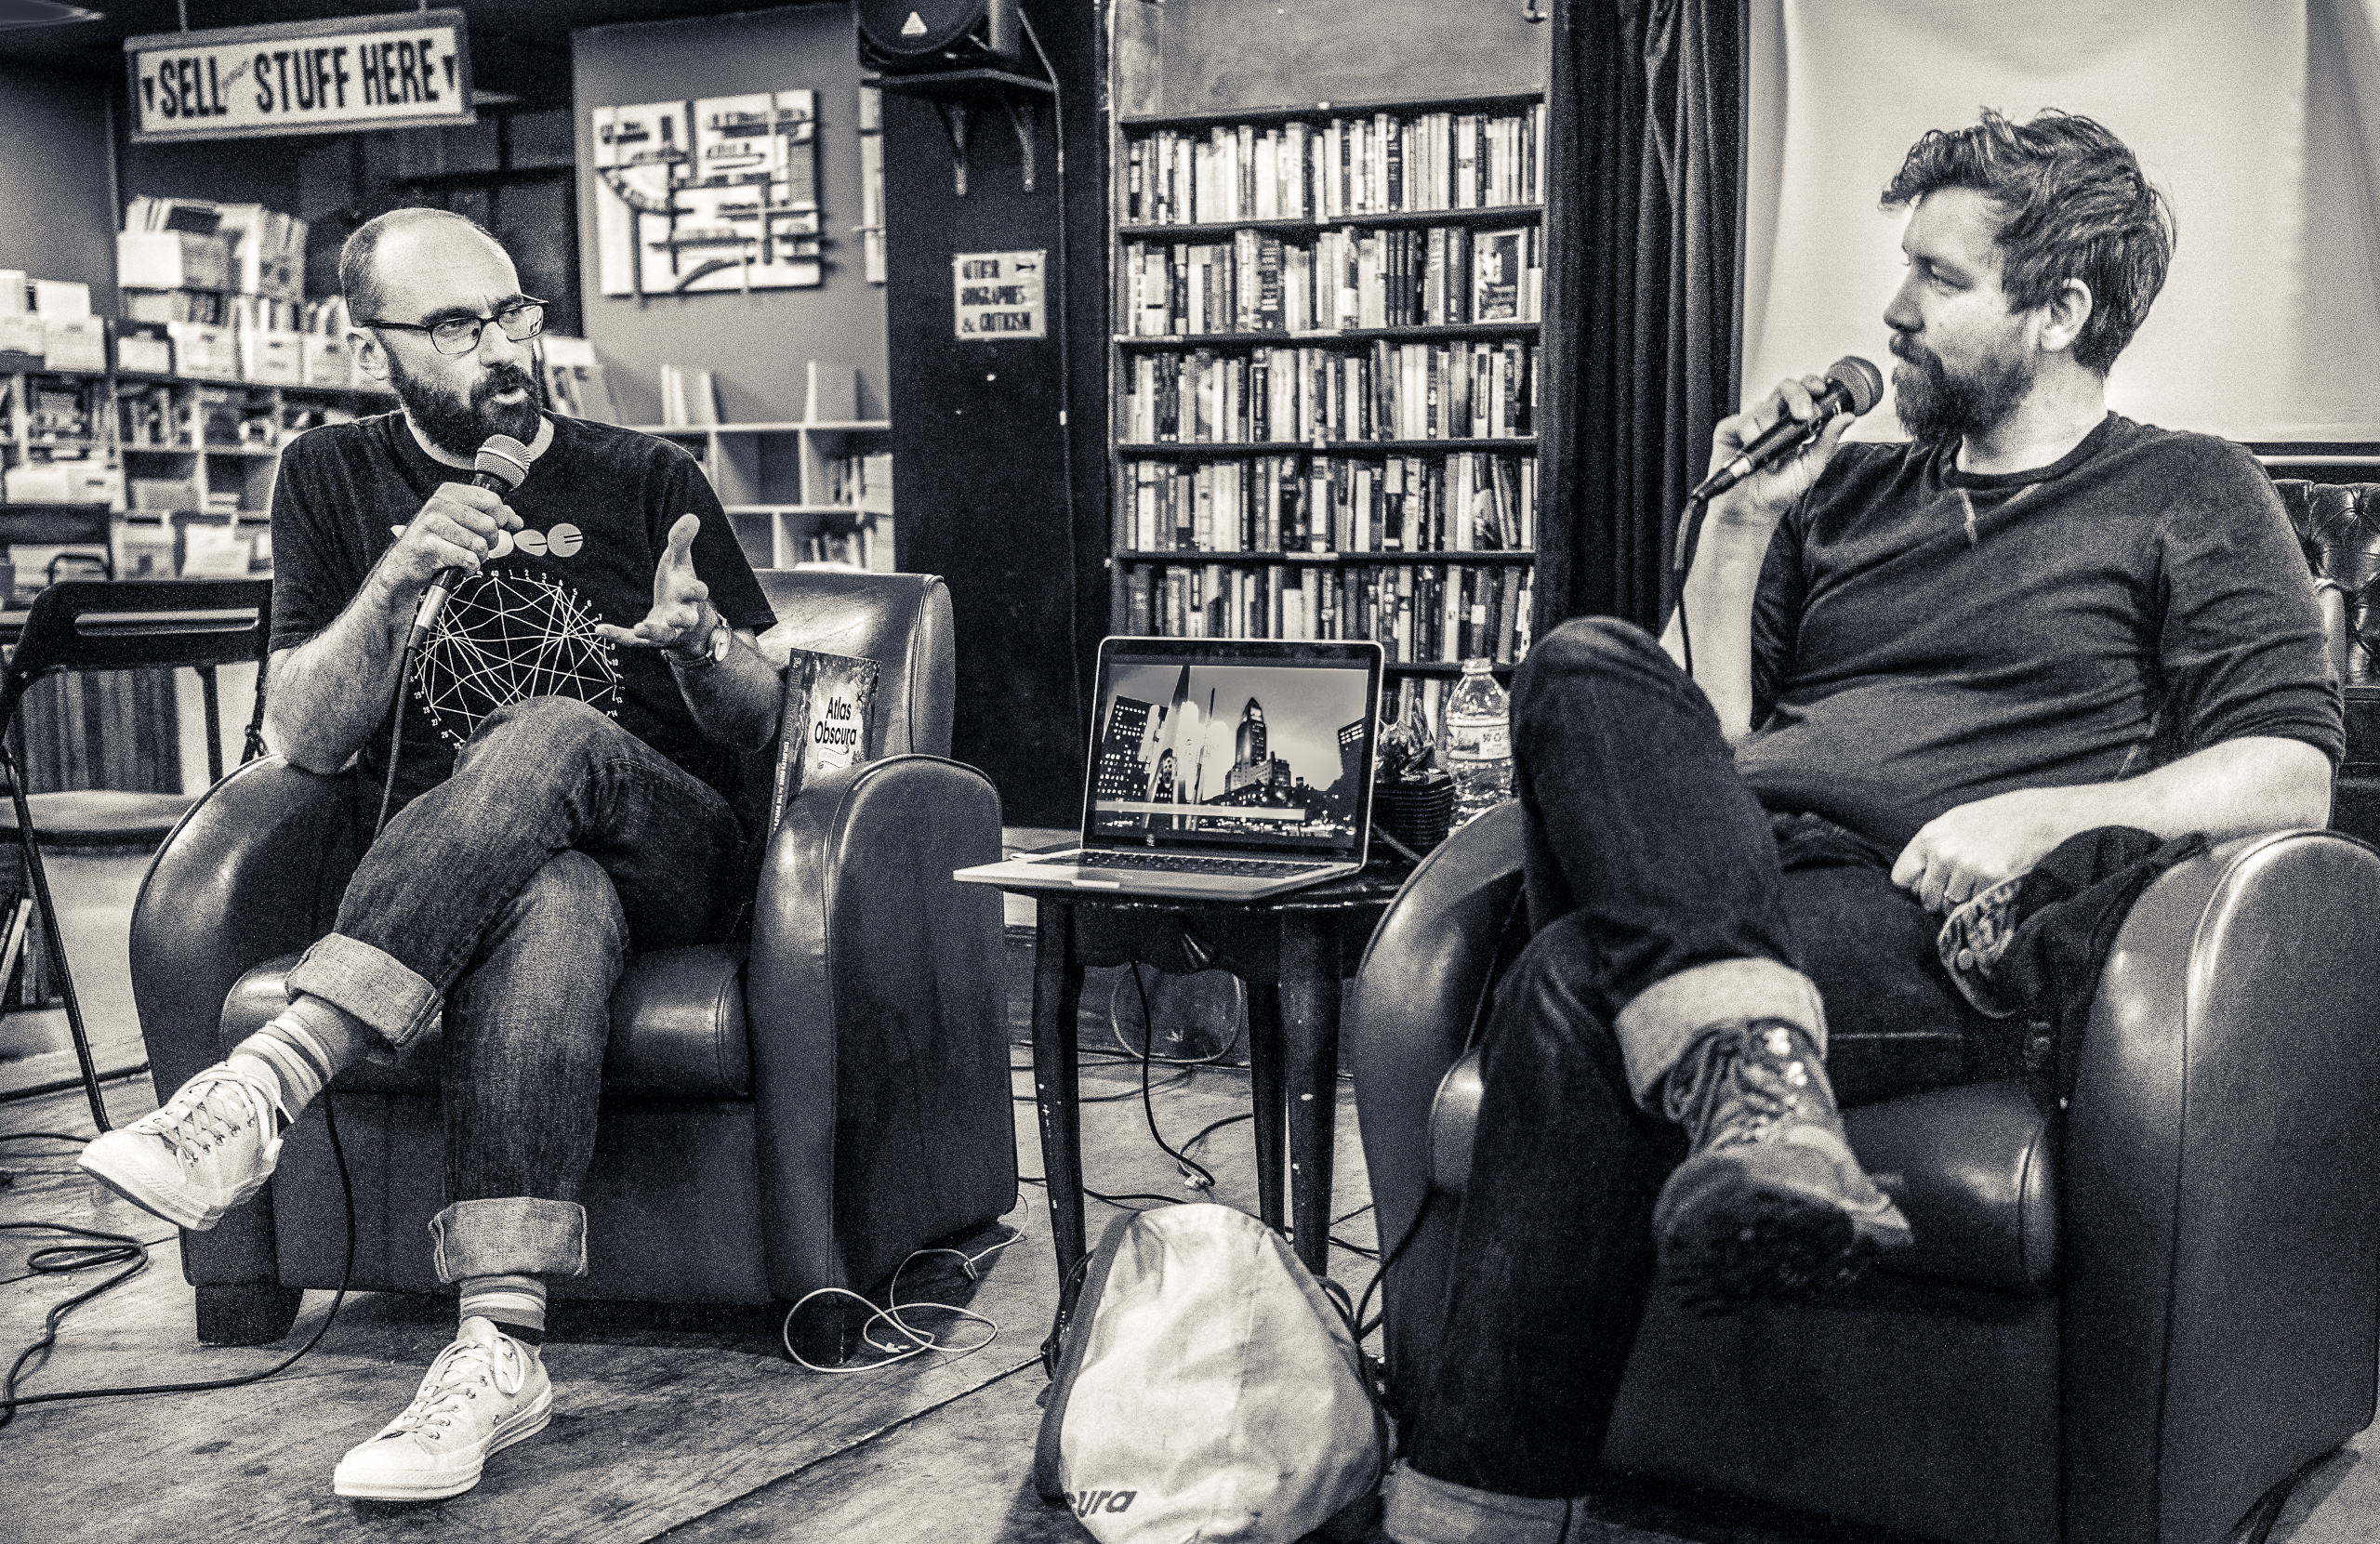 Michael Stevens & Dylan Thuras in conversation at The Last Bookstore, in Downtown Los Angeles